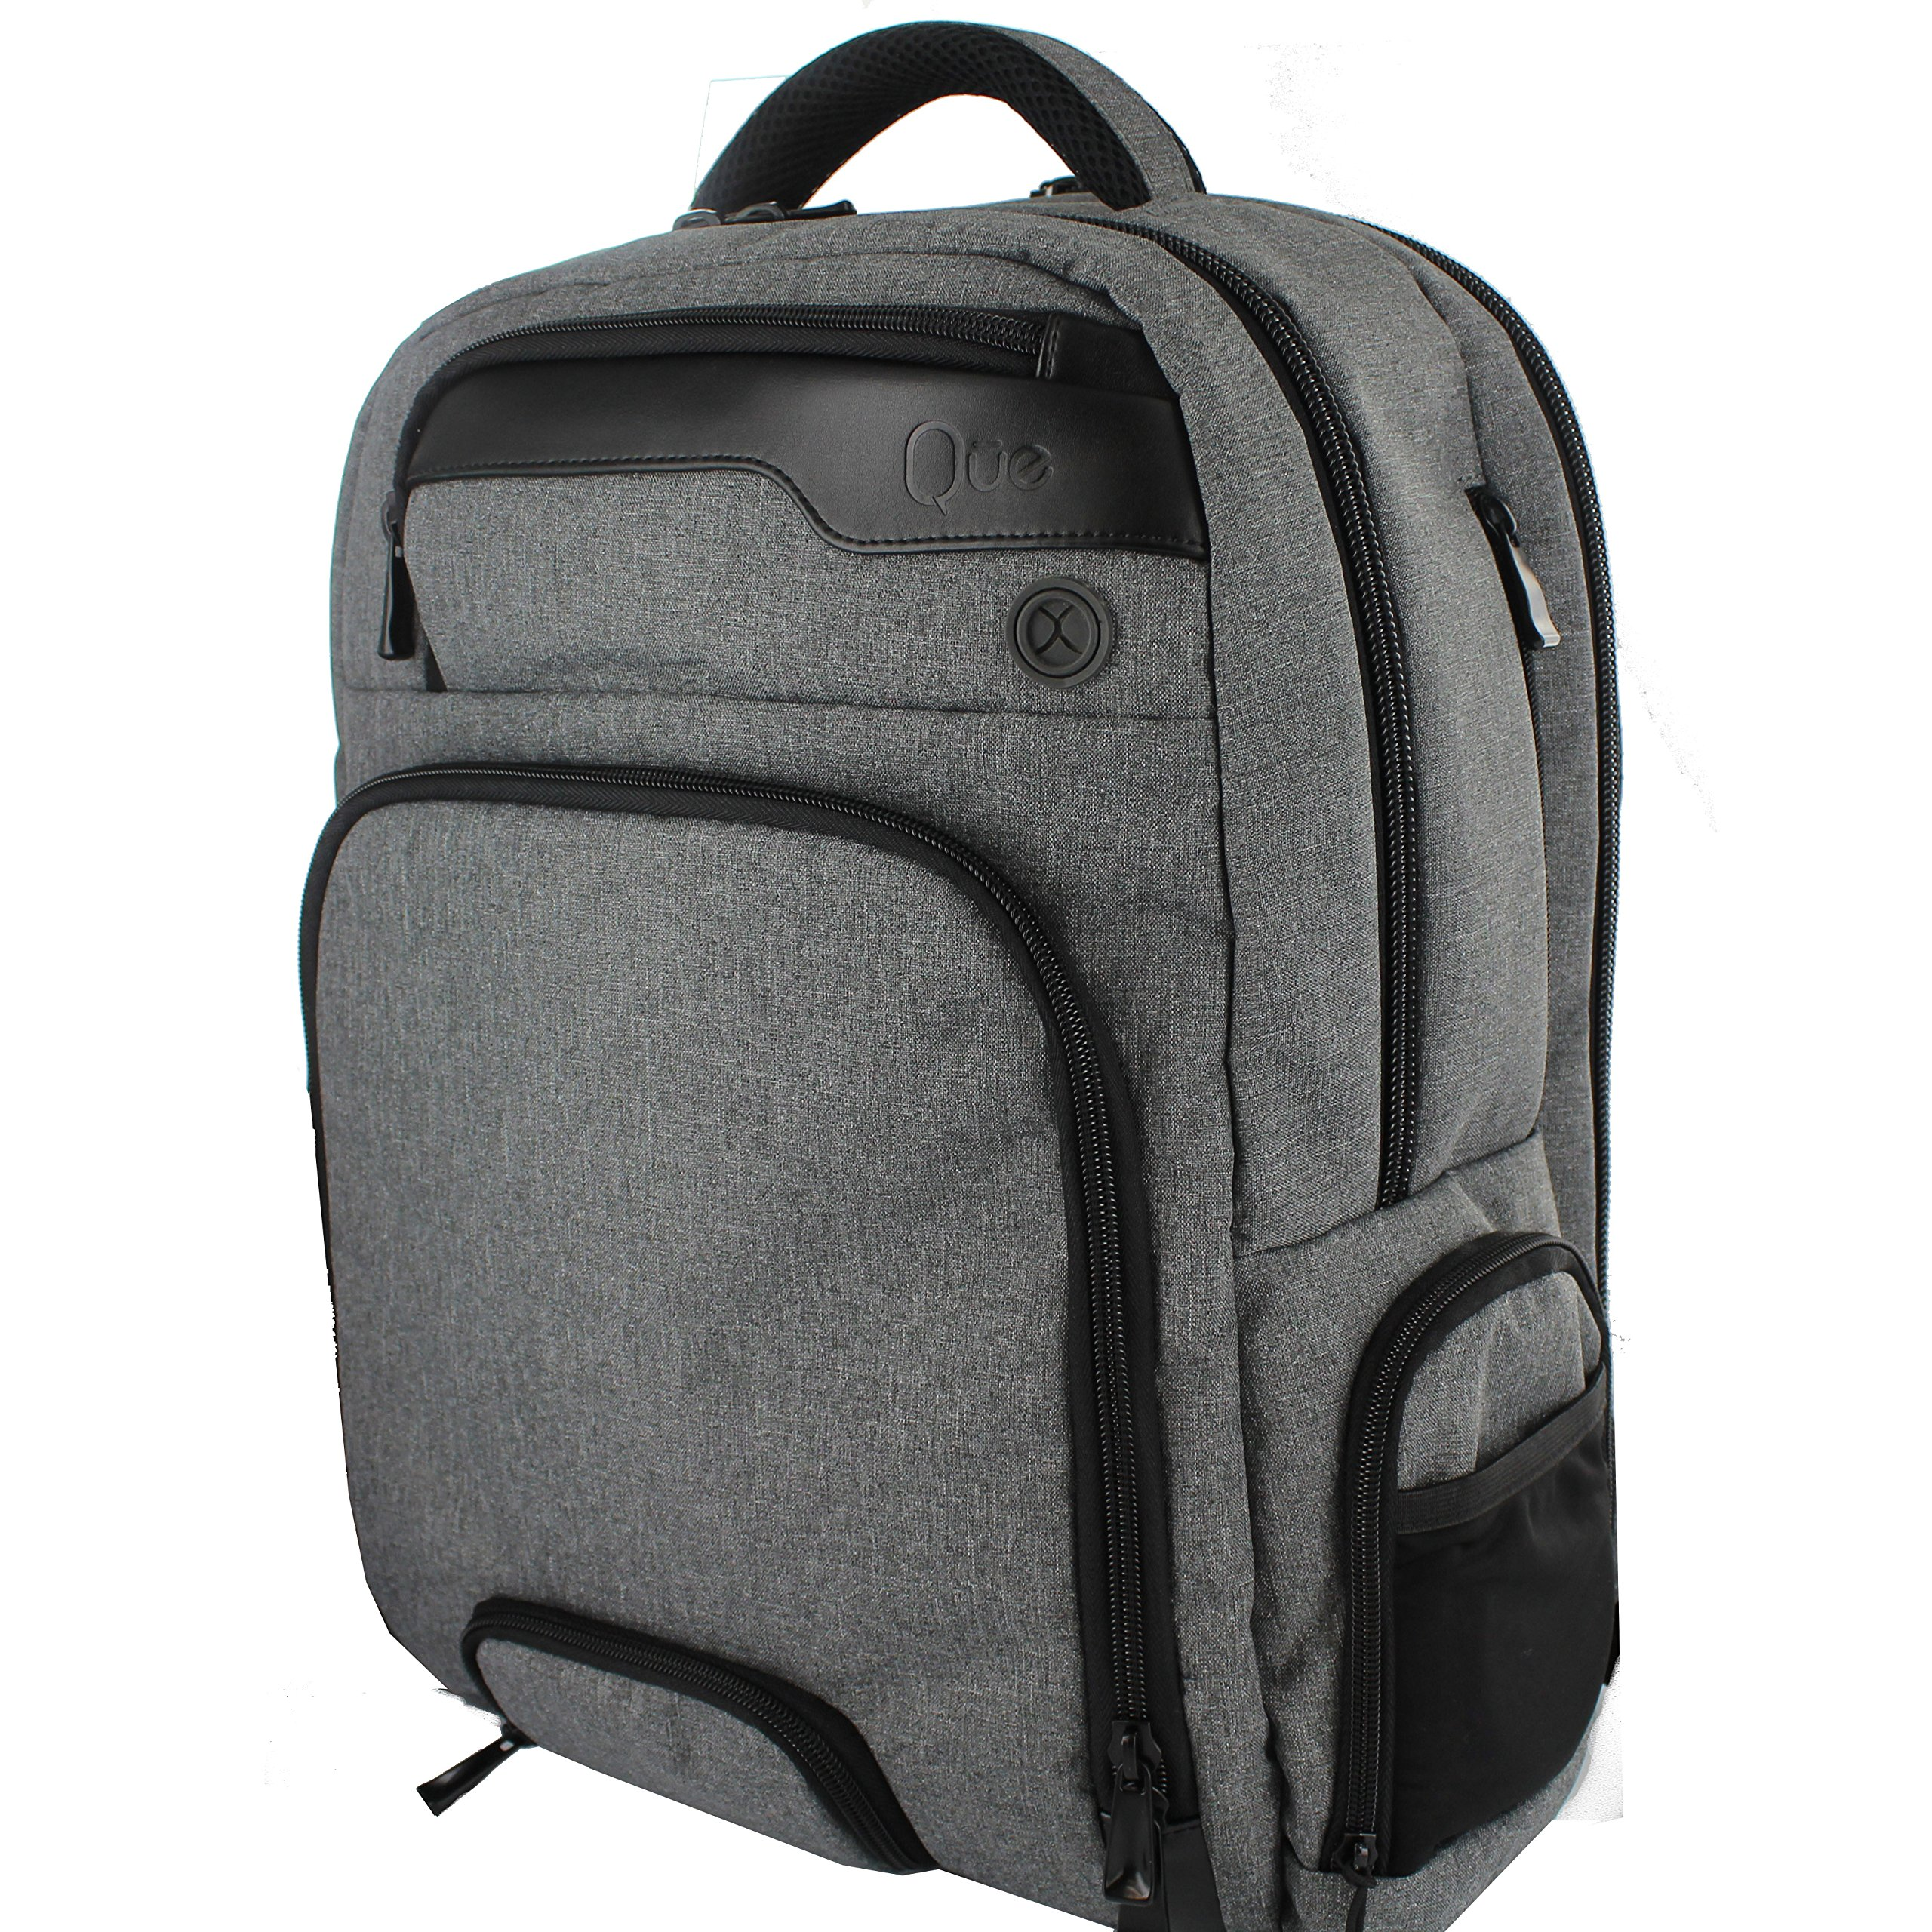 Jambag Powerbag Backpack by Que: Bluetooth Speakers, Charging Station, Protected Laptop Sleeve. Hidden Valuables Pocket. Perfect for Travel (Gray)